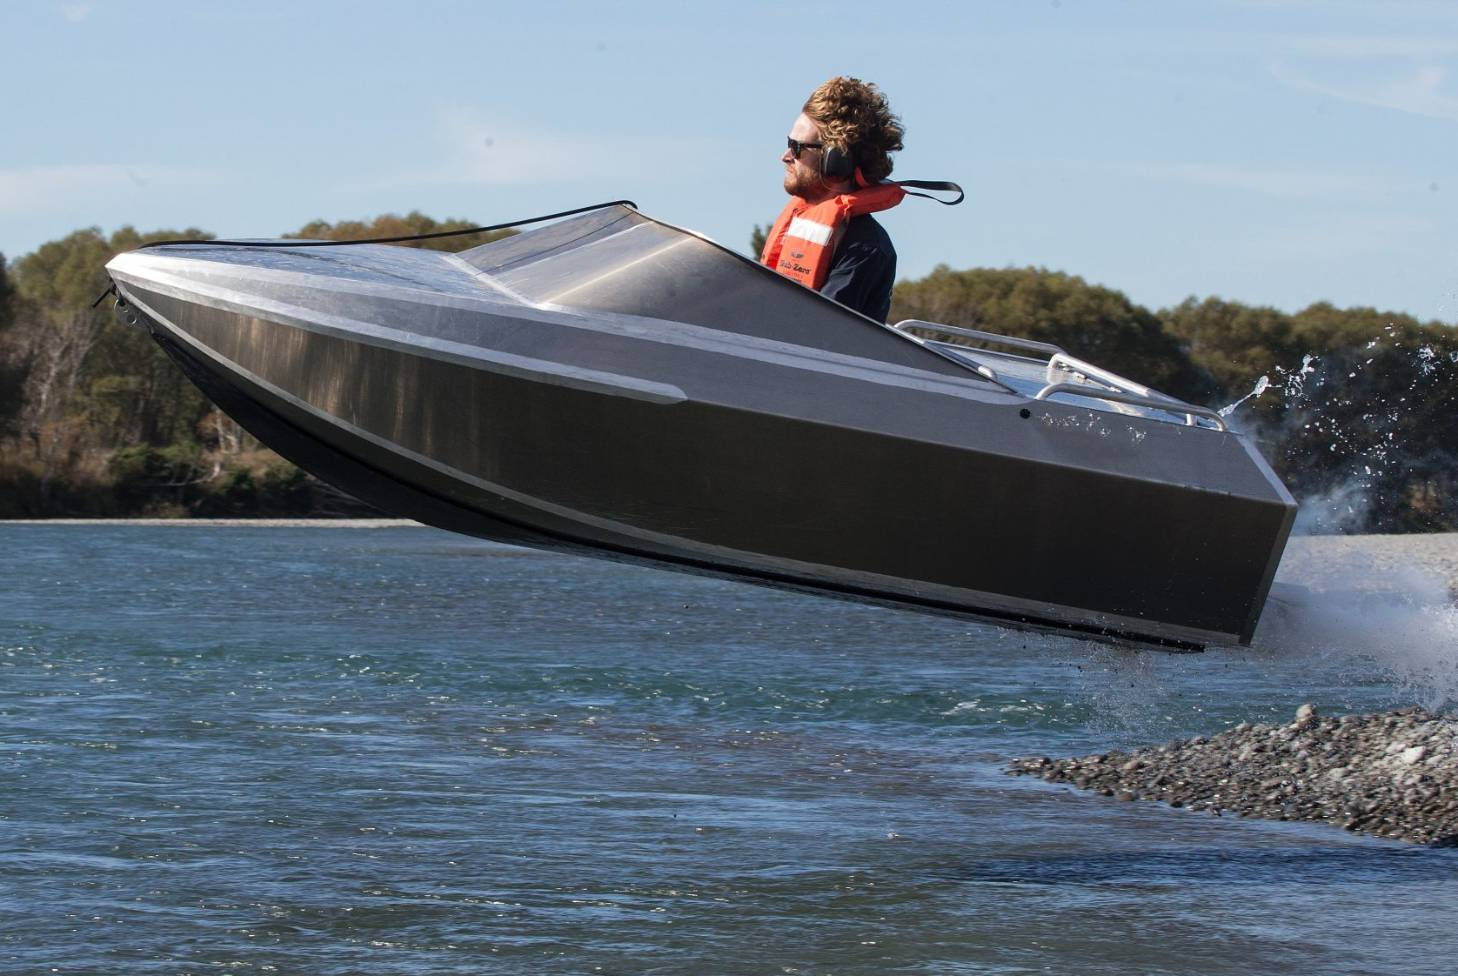 Mini jet-boats are 'built for fun' | Stuff co nz